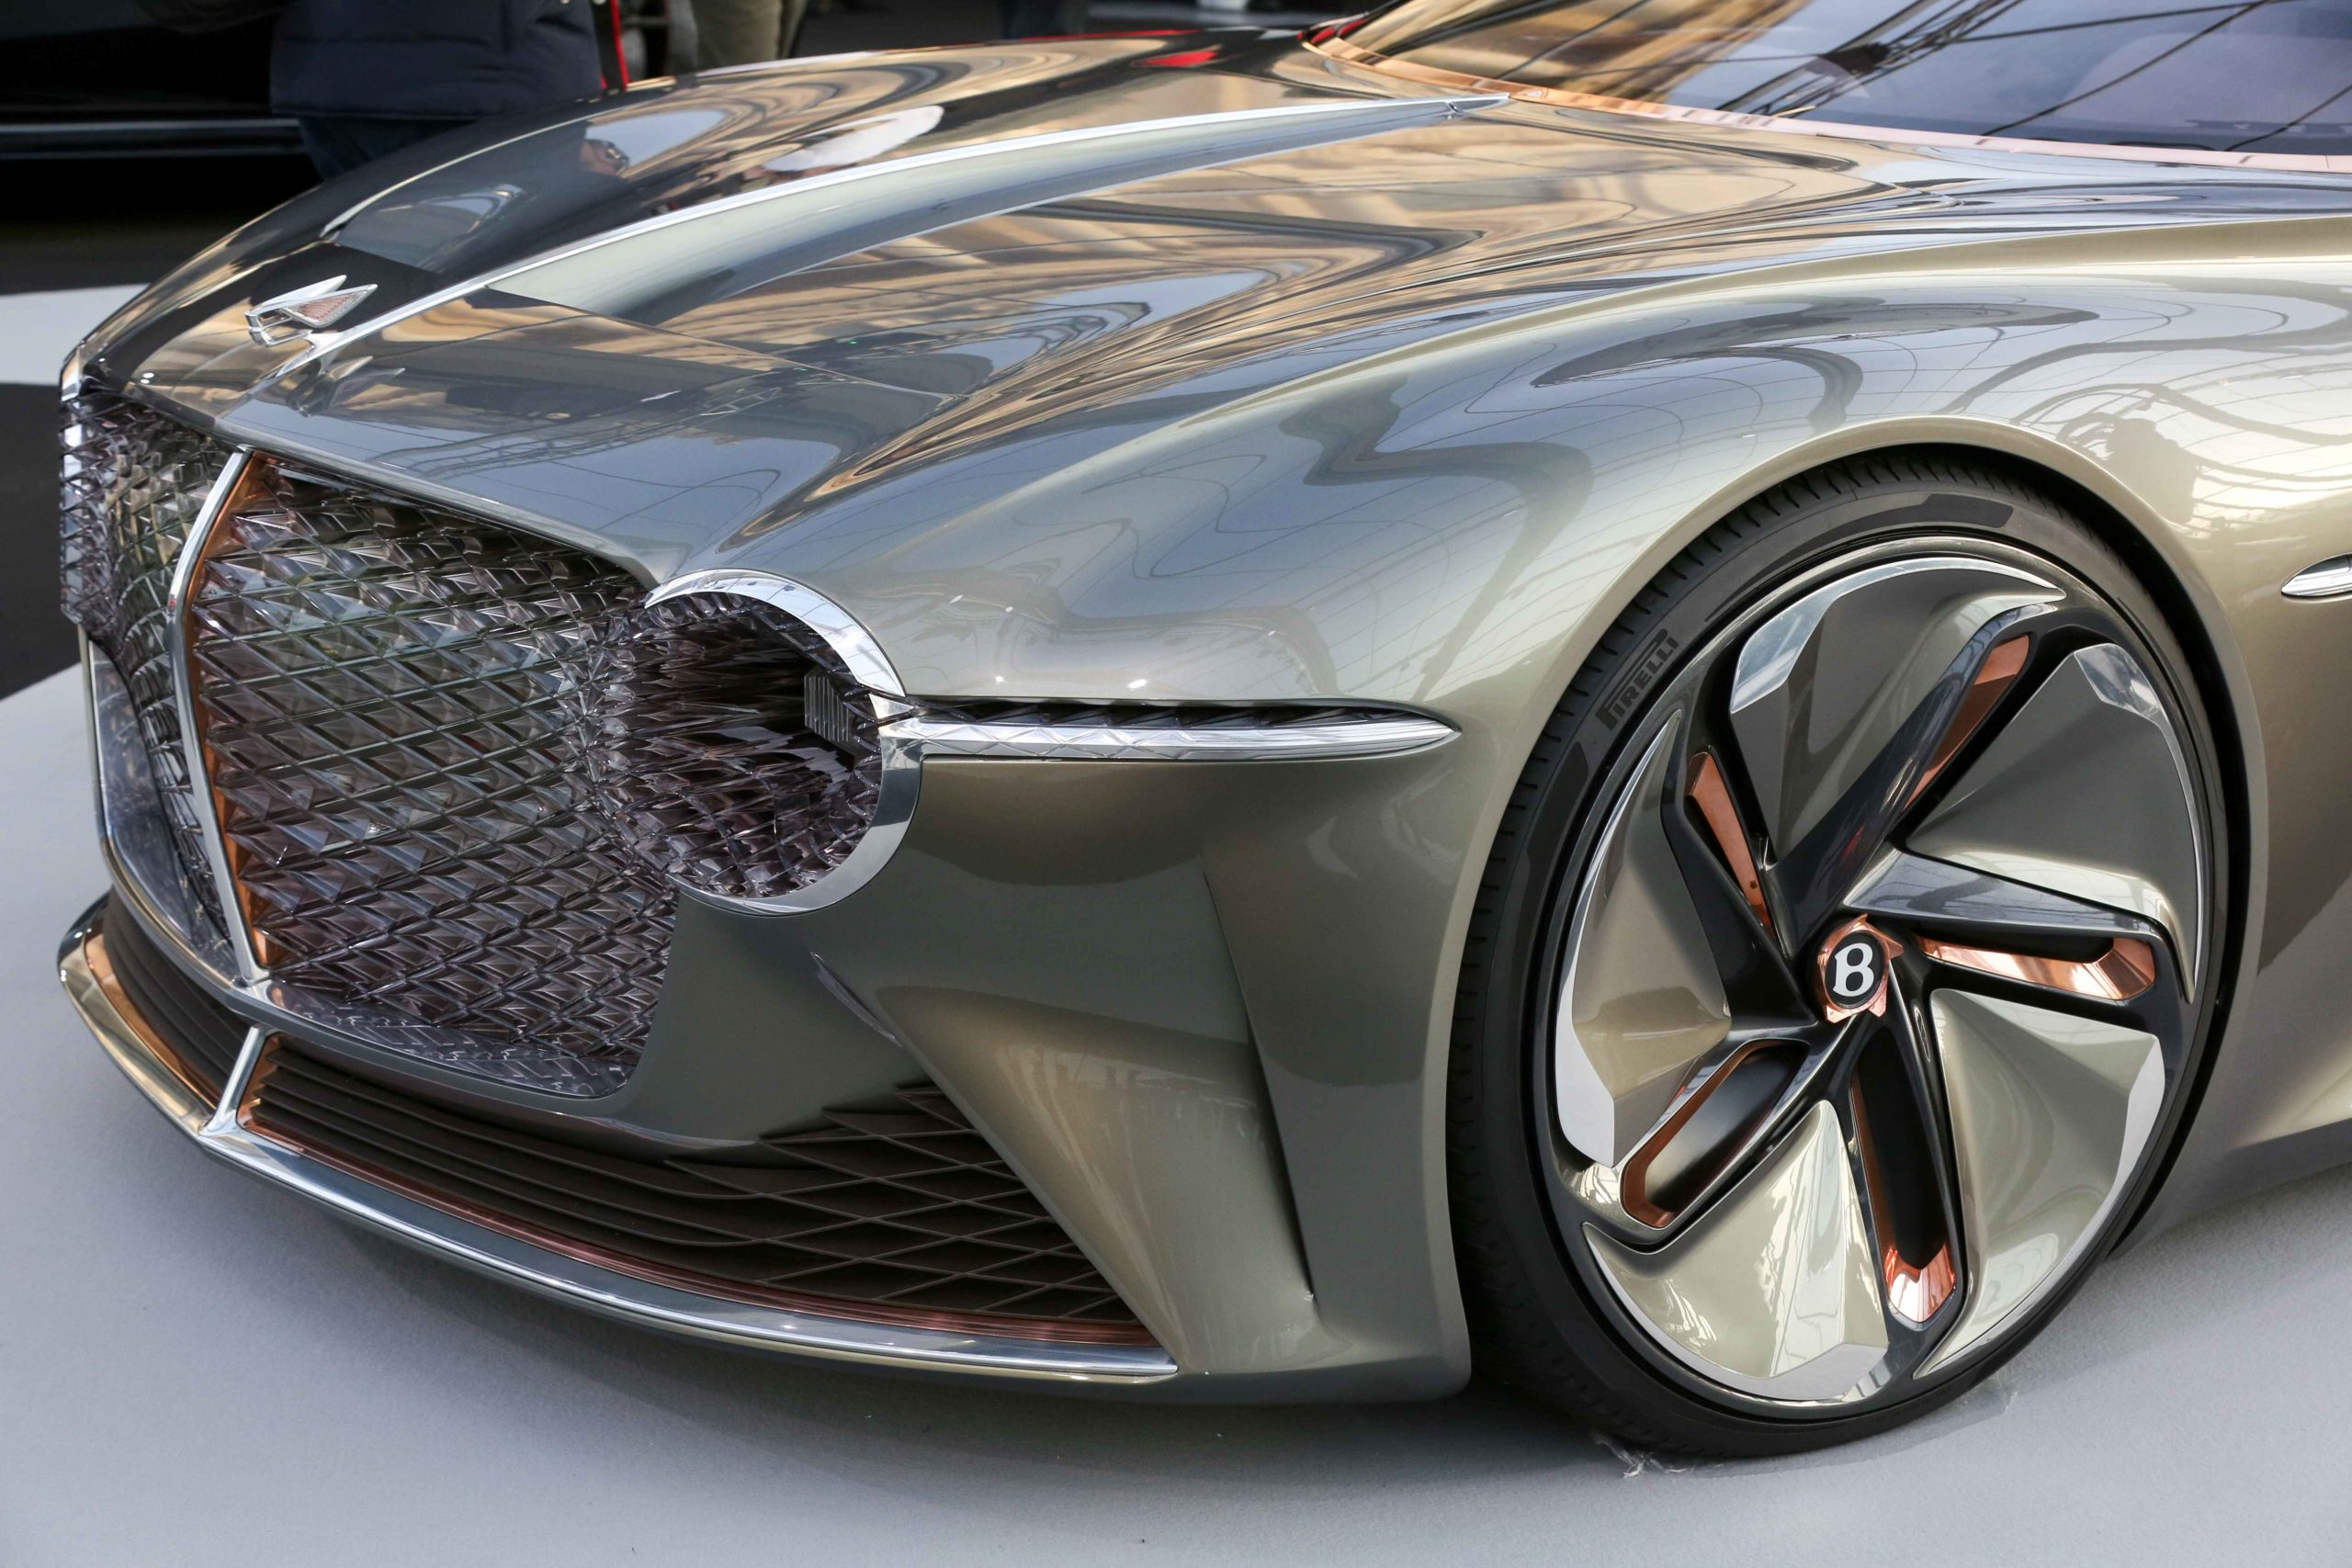 A Bentley Exp 100 GT concept-car is displayed during the press day of the 2020 concept-cars exhibition and automobile design in Paris on January 20, 2020. The latest concept-cars and supercars are displayed during this exhibition where the greatest designe